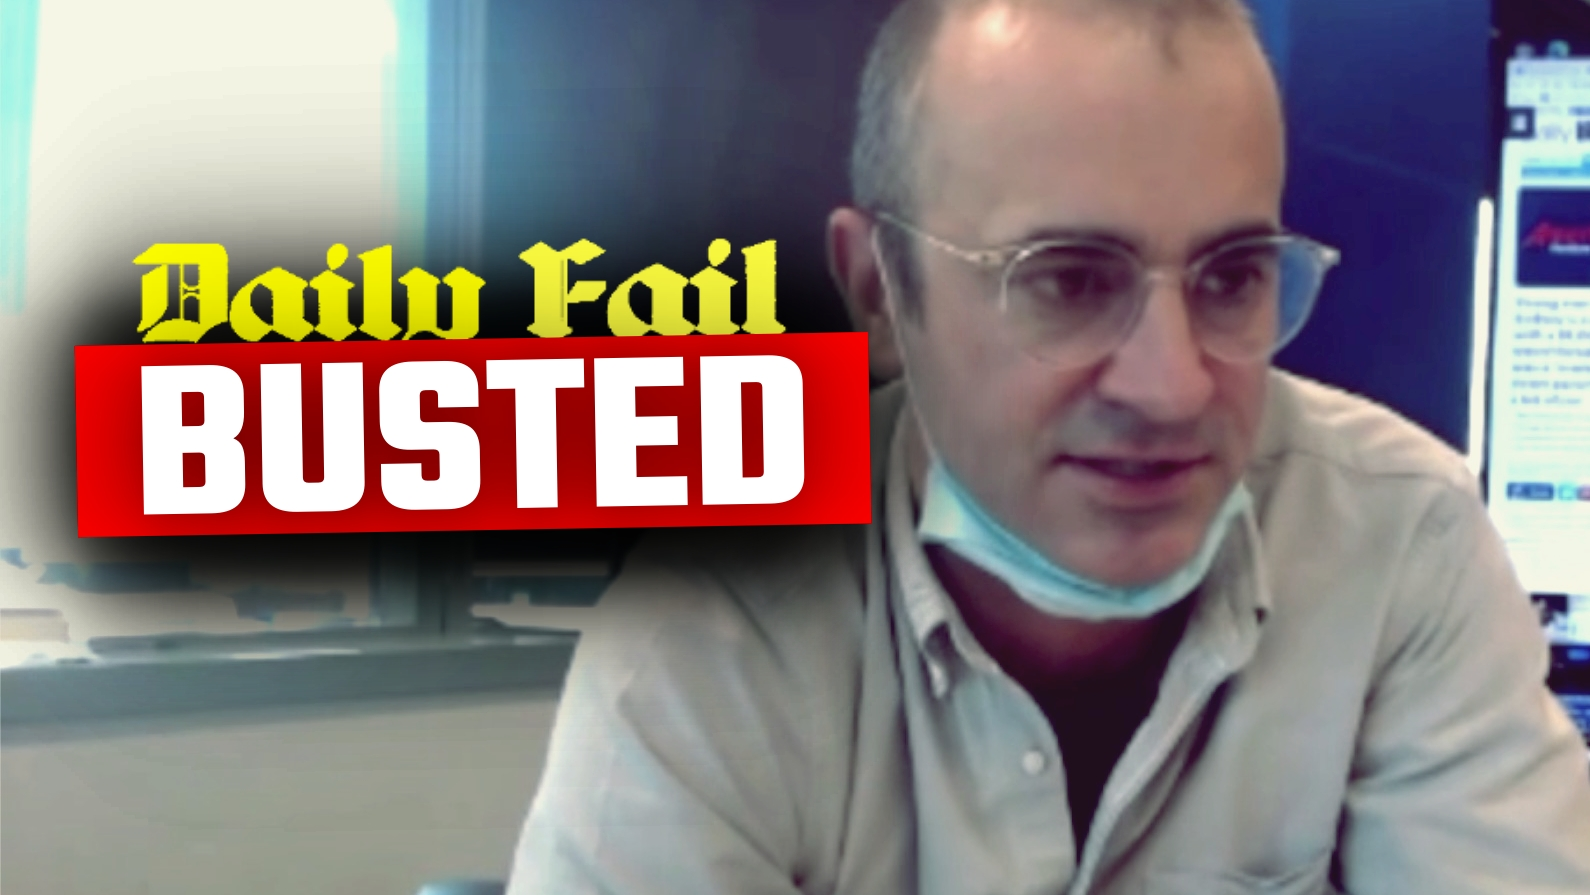 LEAKED VIDEO: Daily Mail Australia caught manufacturing fake news